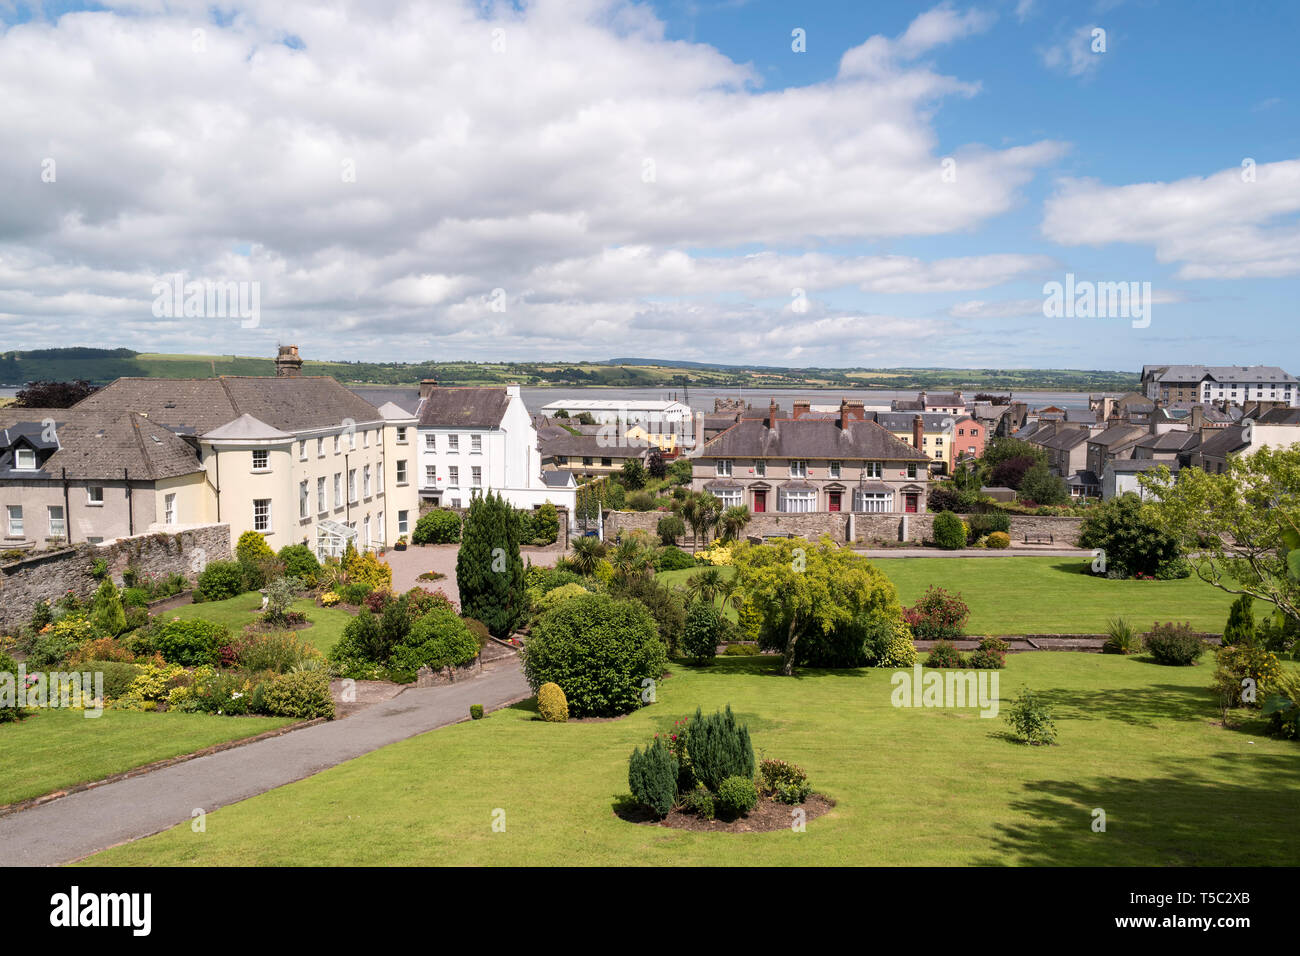 Youghal is a small town in County Cork,picturesquely located along the shore of Youghal Bay. - Stock Image